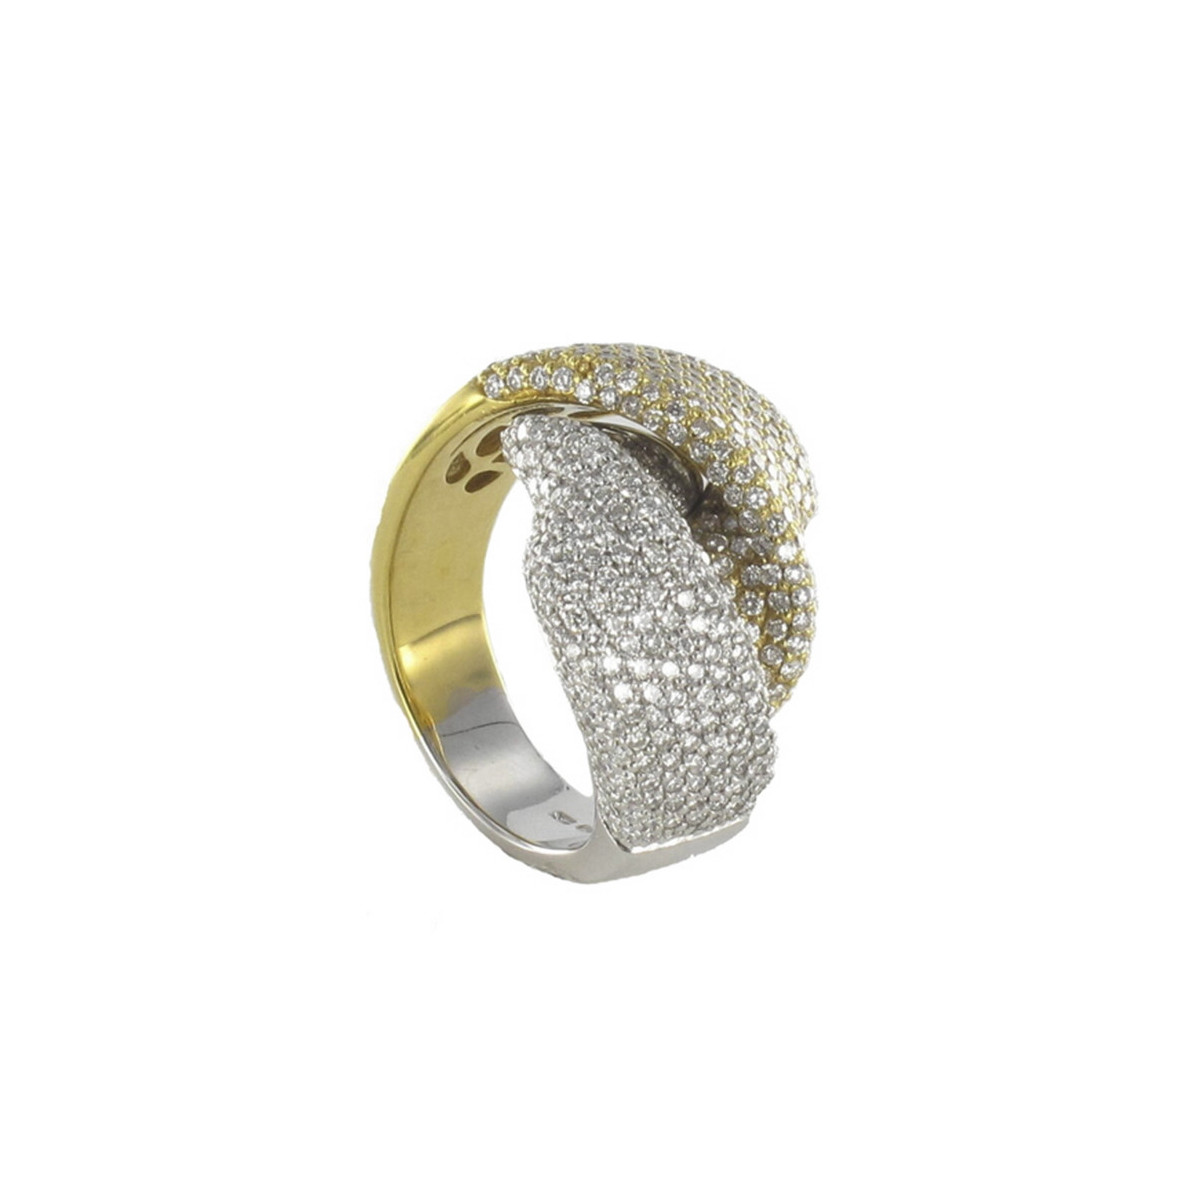 GOLD AND DIAMOND RING 2,18 KTES